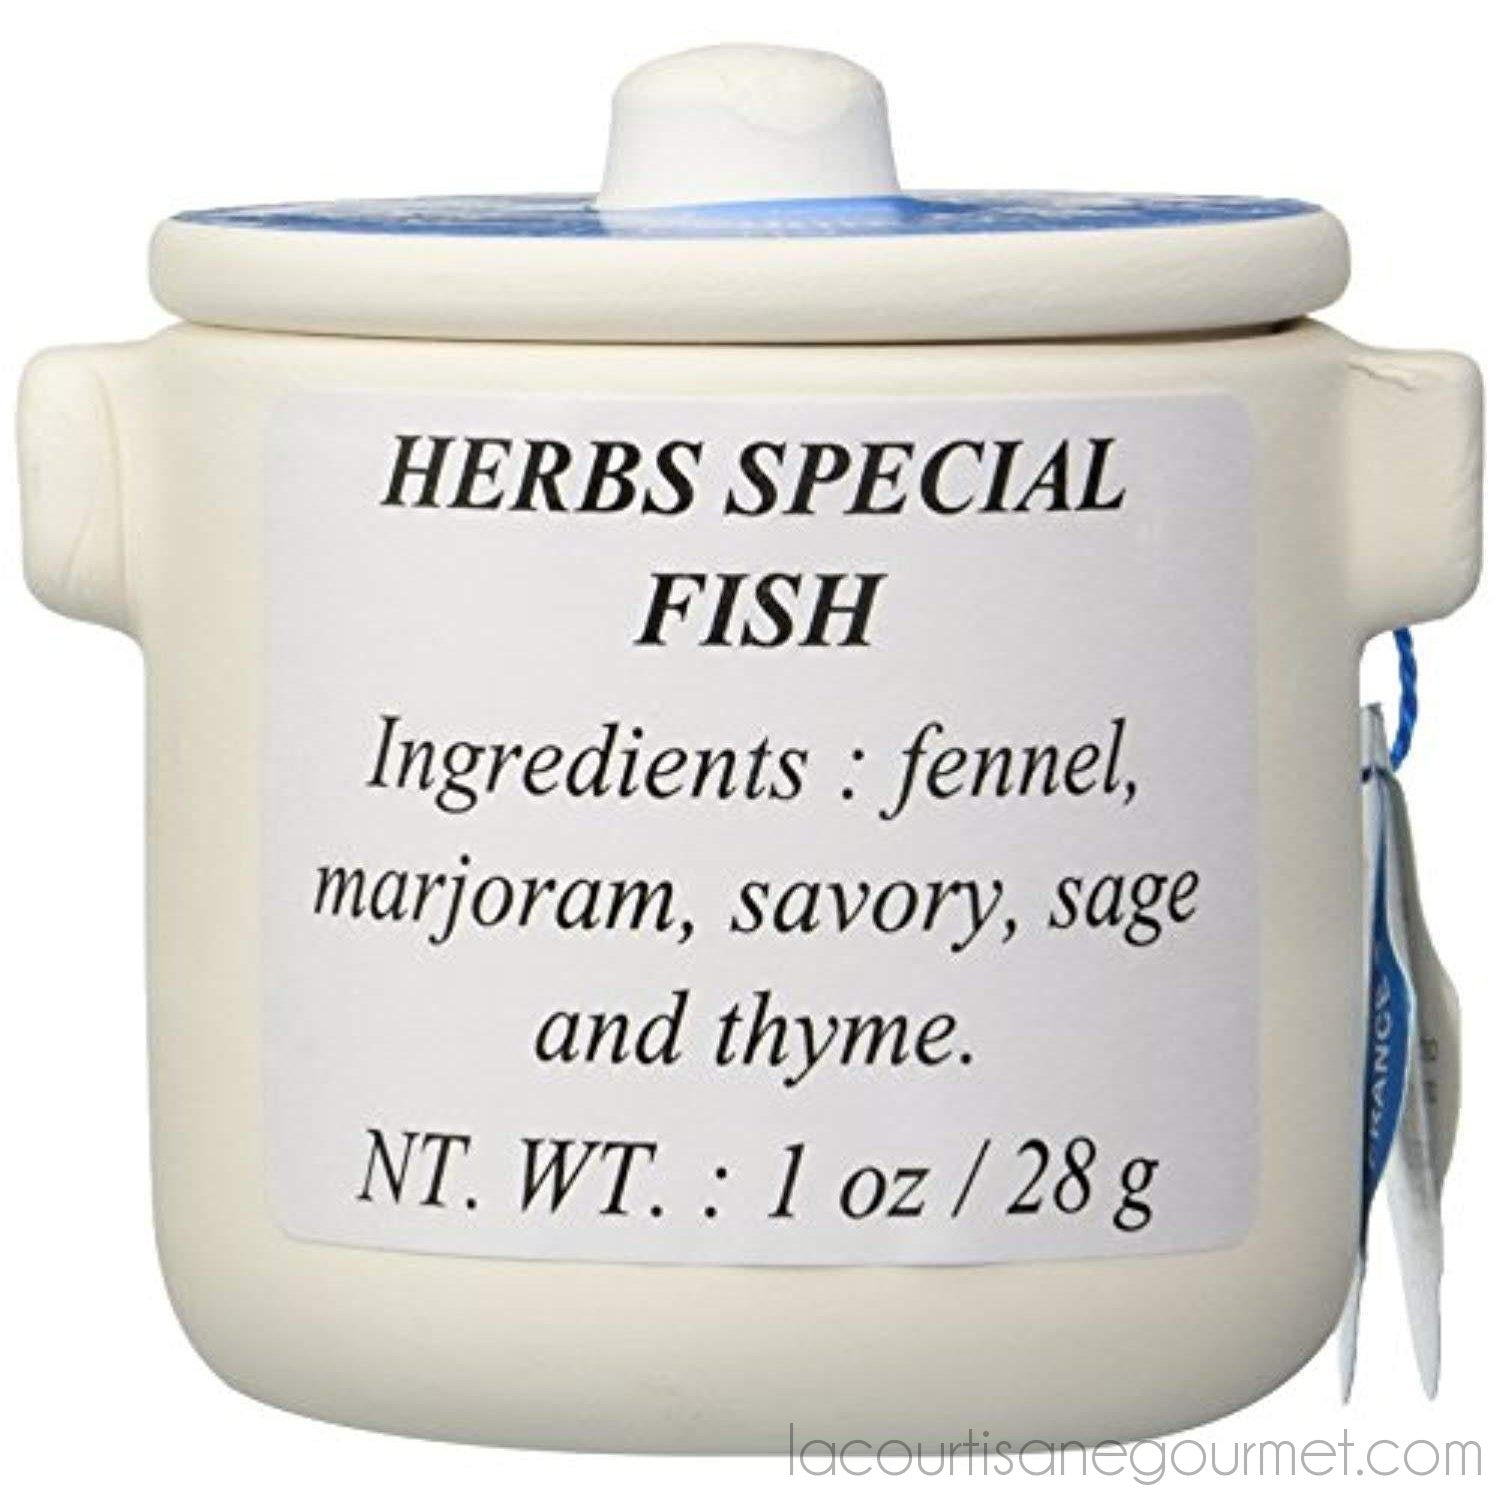 Aux Anysetiers Du Roy - Herbes De Provence Special Fish In Ceramic Jar- 1Oz (28G) - Herb - La Courtisane Gourmet Food